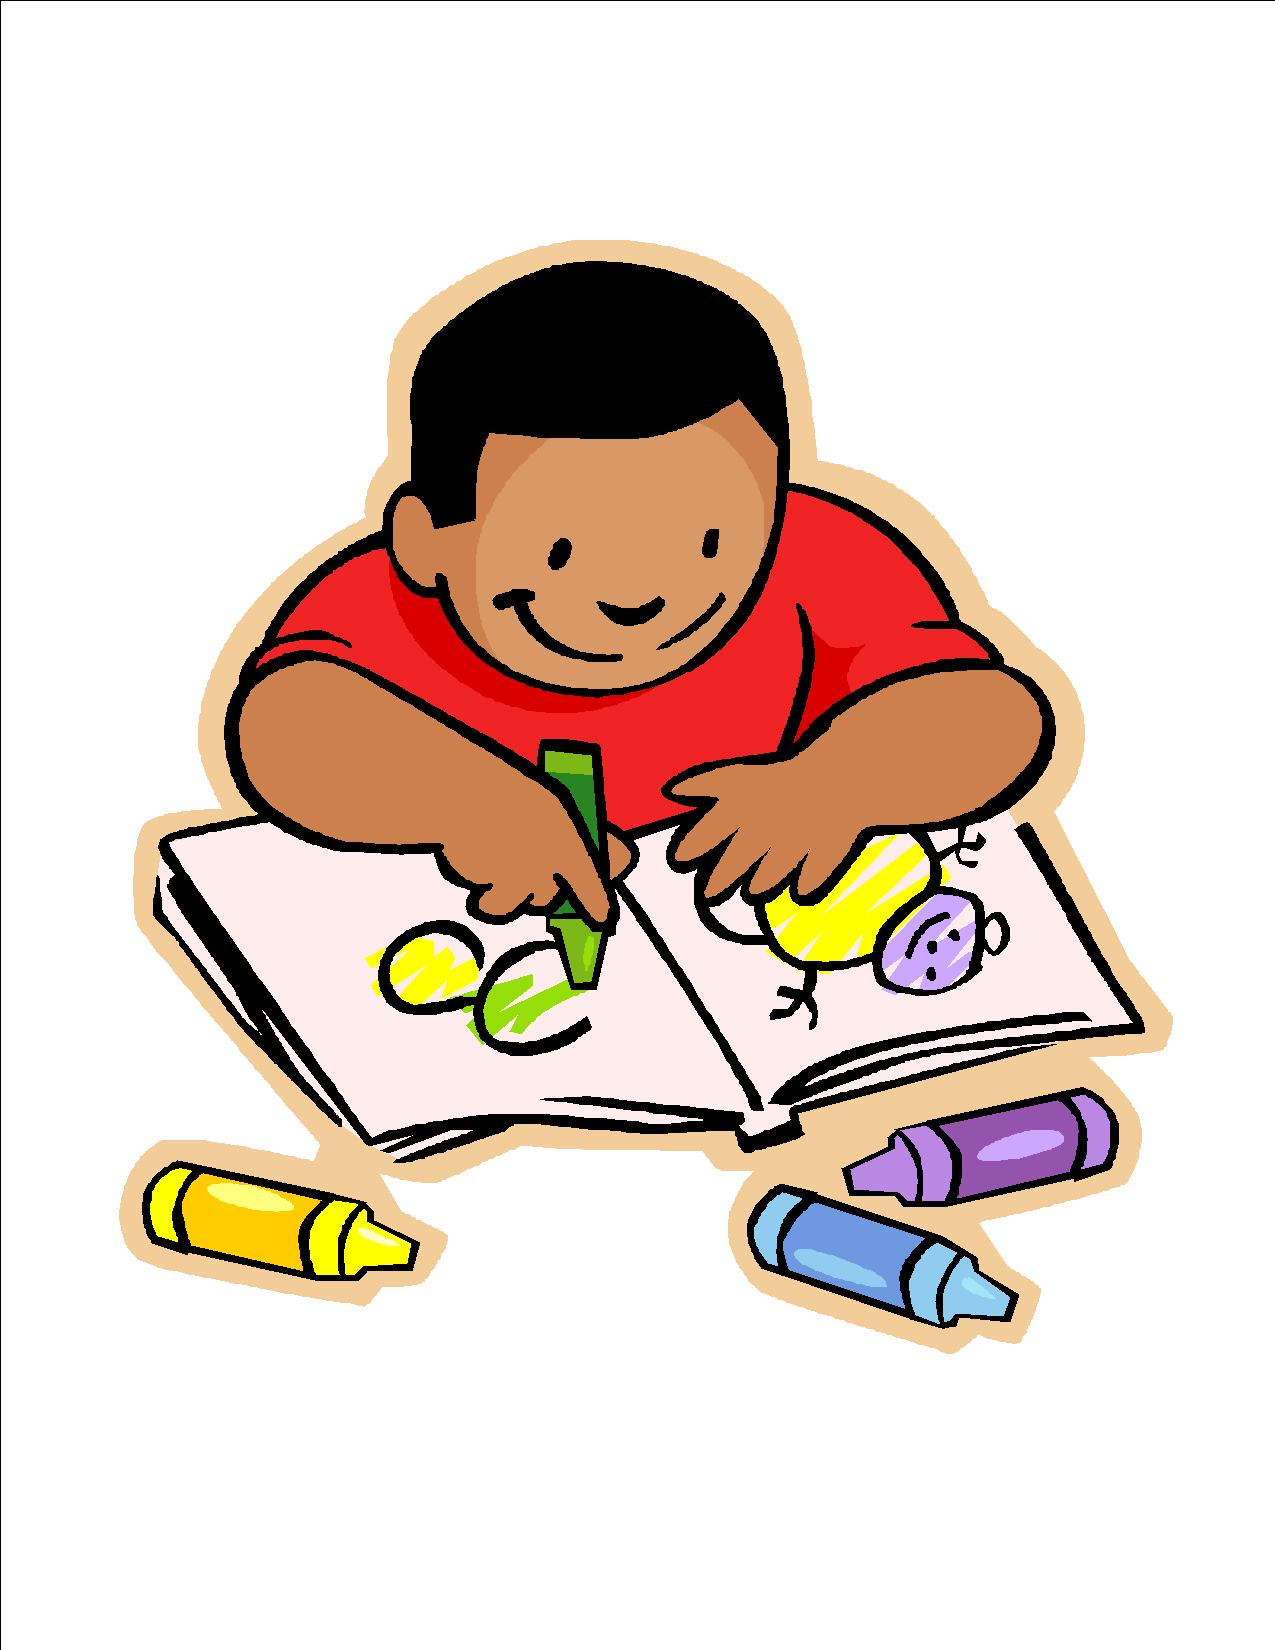 Journal clipart kids. Free images of children